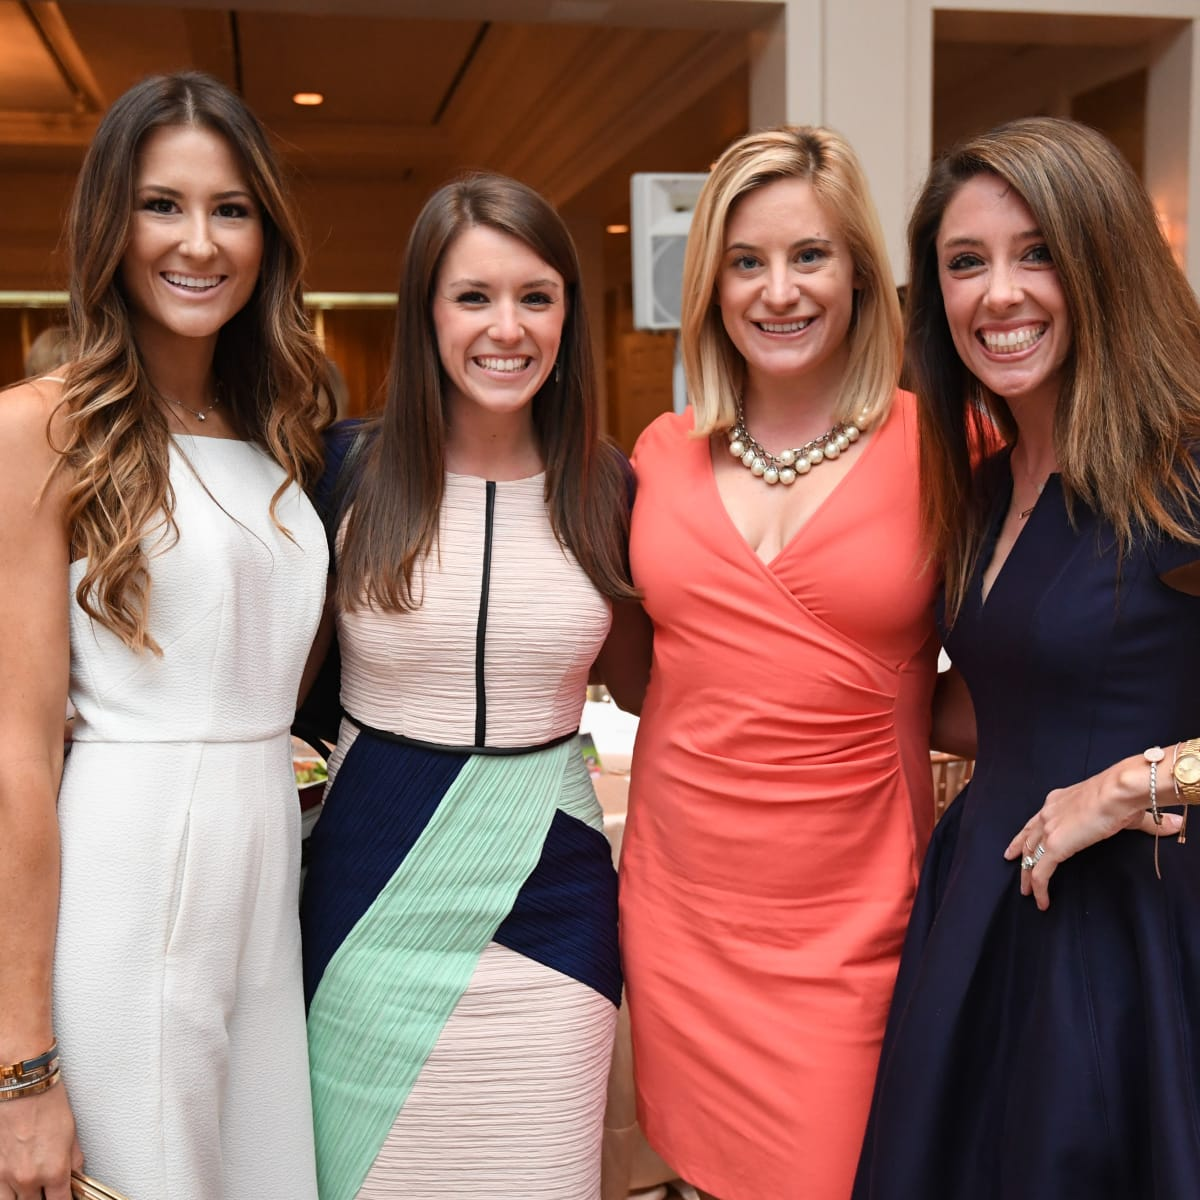 Star of Hope luncheon 5/16 Elizbeth Wood Edgeworth, Laura Piatkowski, Alexis Caruselle, Jennifer Welker